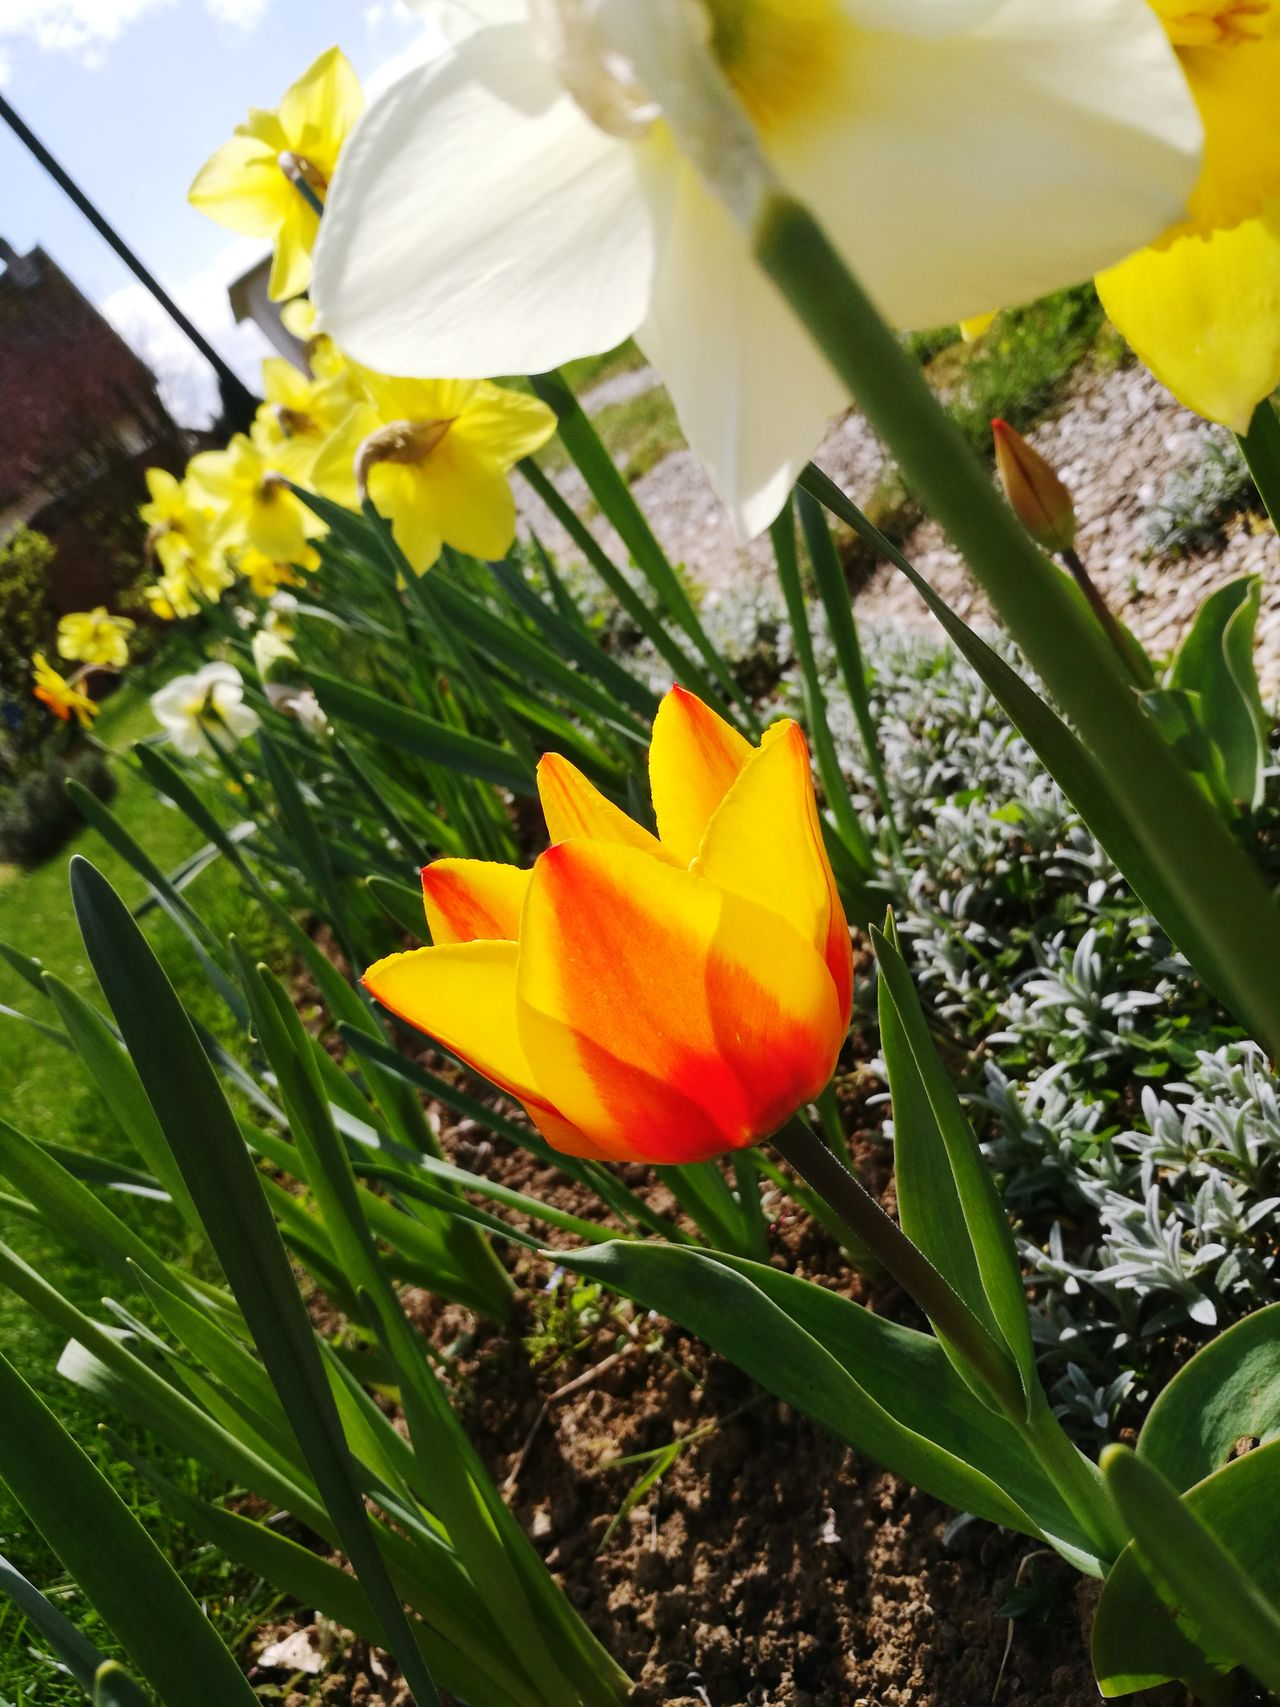 Tulipe Flower Nature Beauty In Nature Petal No People Outdoors Fragility Yellow Beauty In Nature